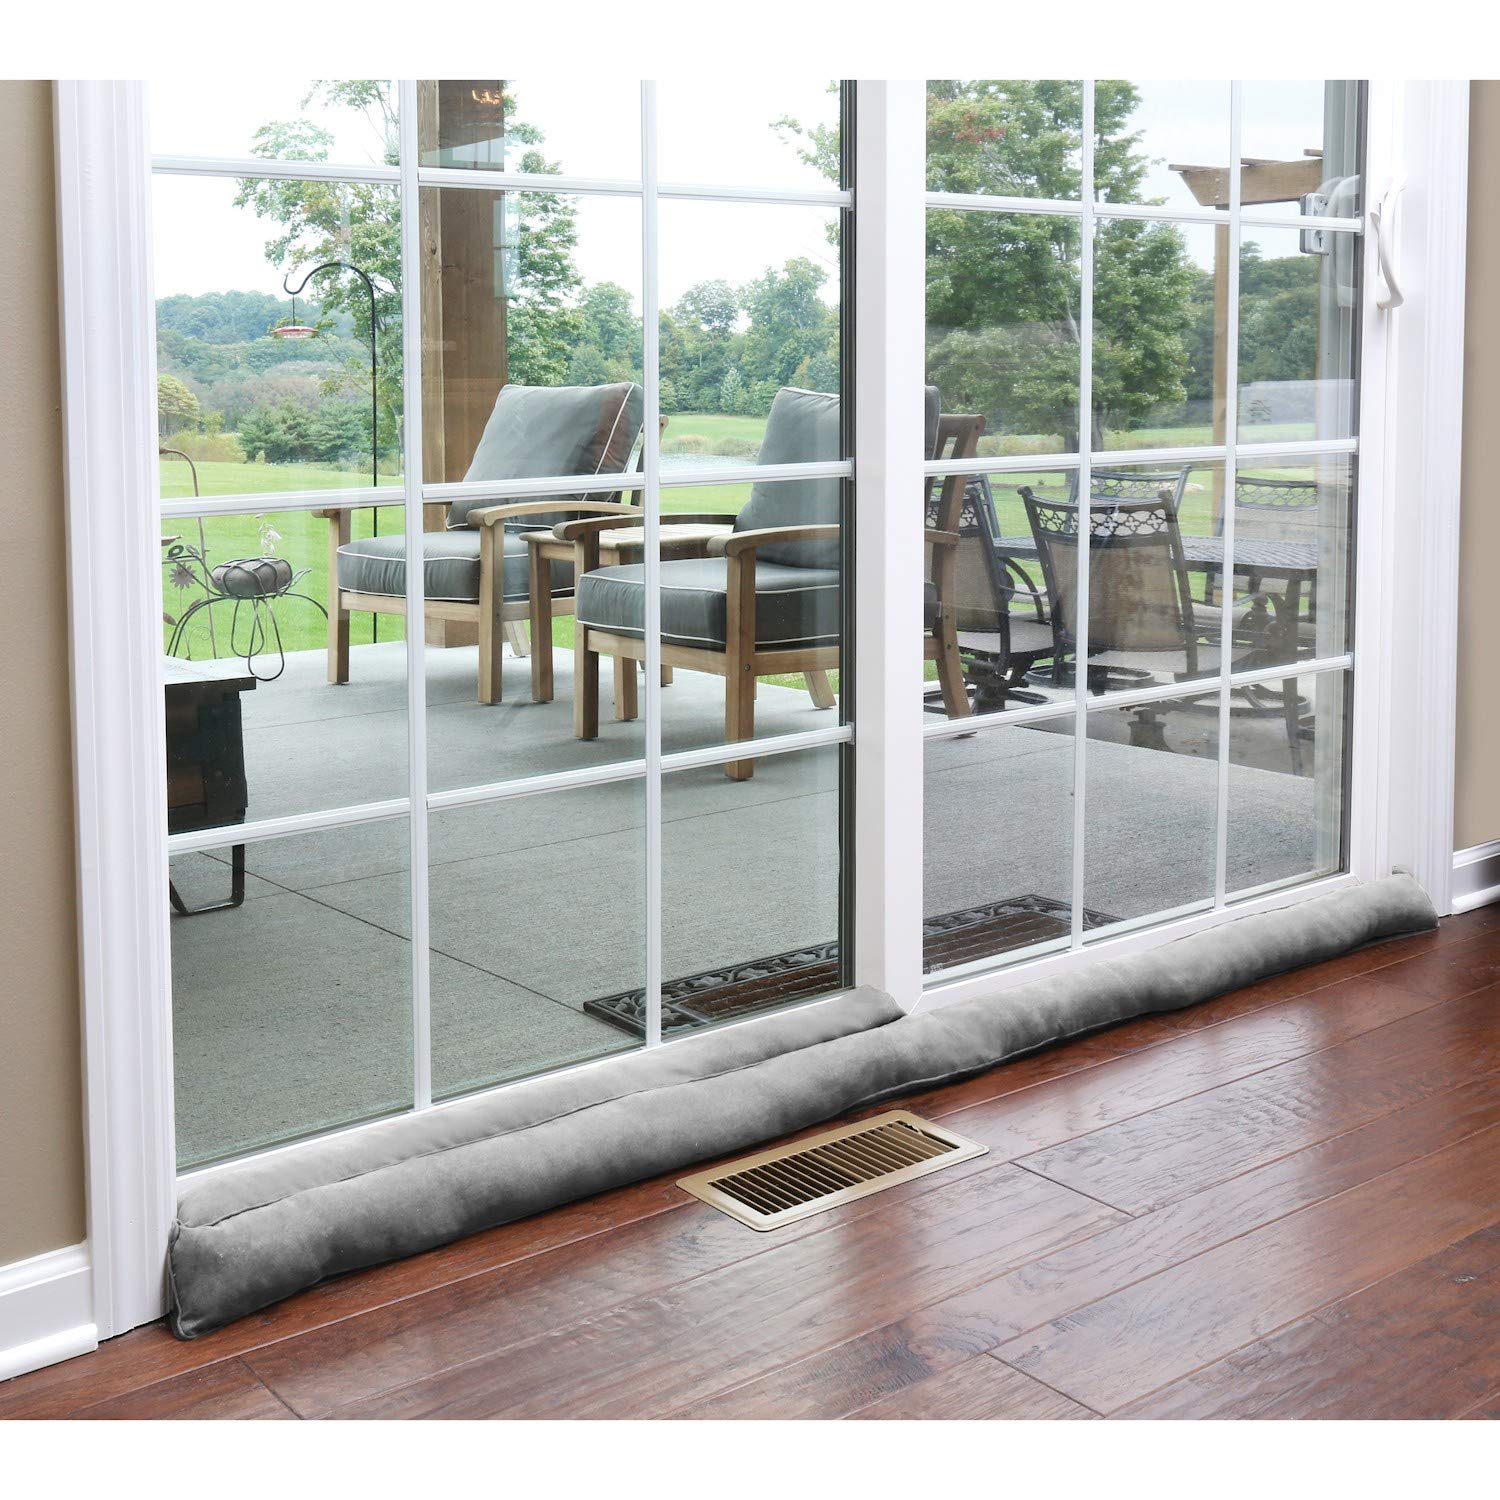 HOME DISTRICT Sliding Door Draft Dodger - Weighted Patio Breeze, Bug, Noise Guard - 71.5'' Long - Gray